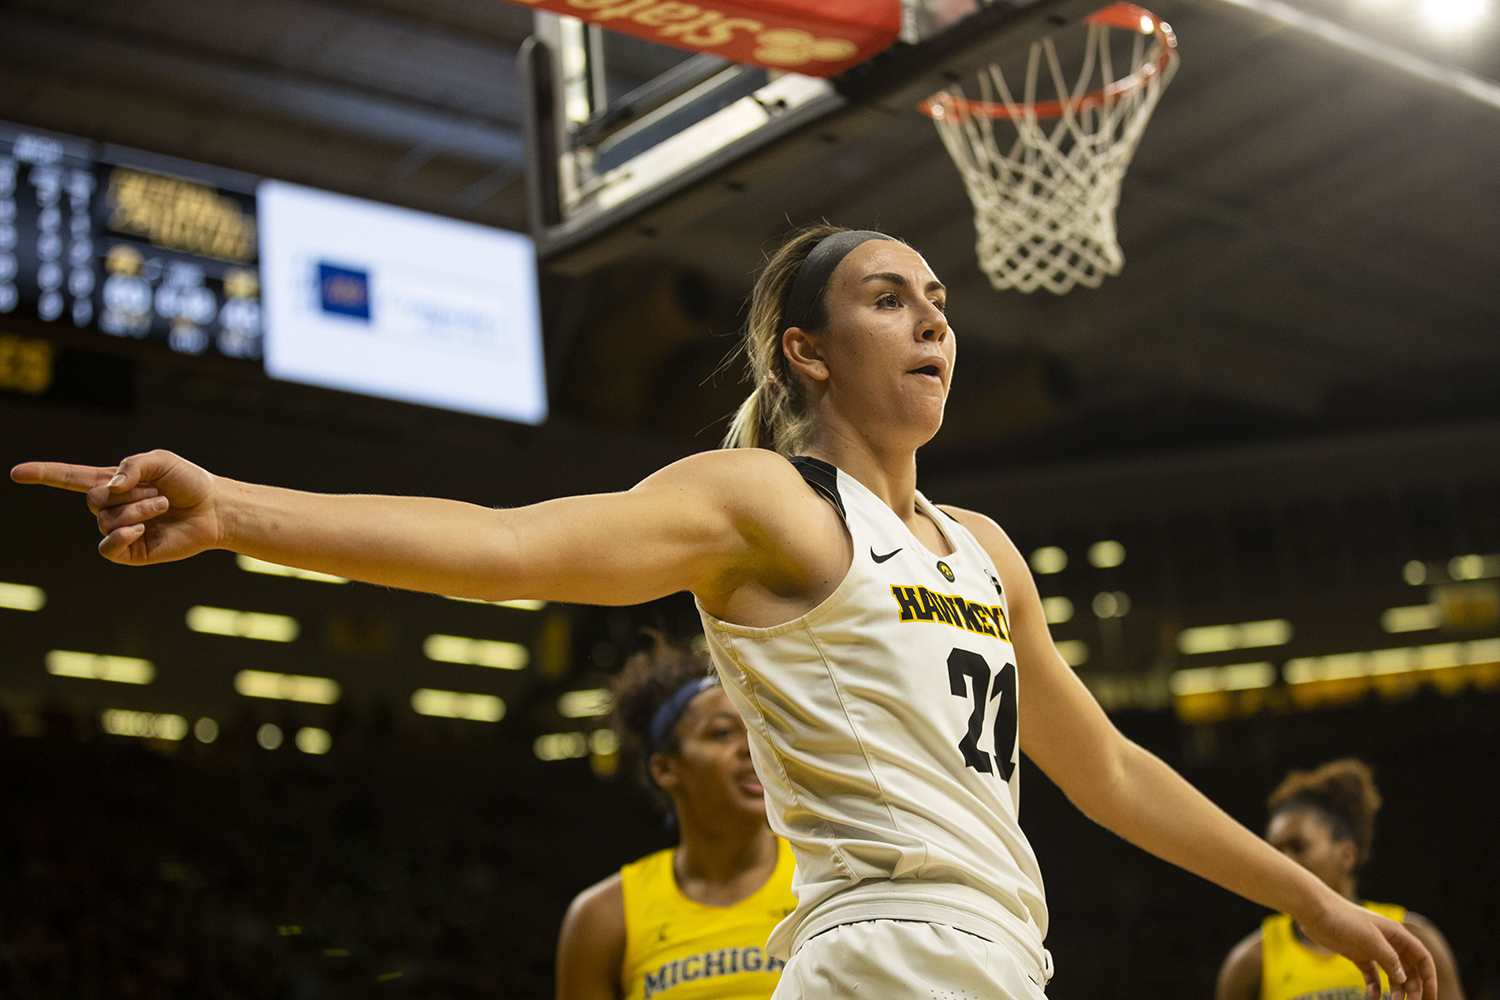 Iowa+forward+Hannah+Stewart+gestures+during+the+Iowa%2FMichigan+women%27s+basketball+game+at+Carver-Hawkeye+Arena+on+Thursday%2C+January+17%2C+2019.+The+Hawkeyes+defeated+the+Wolverines%2C+75-61.+